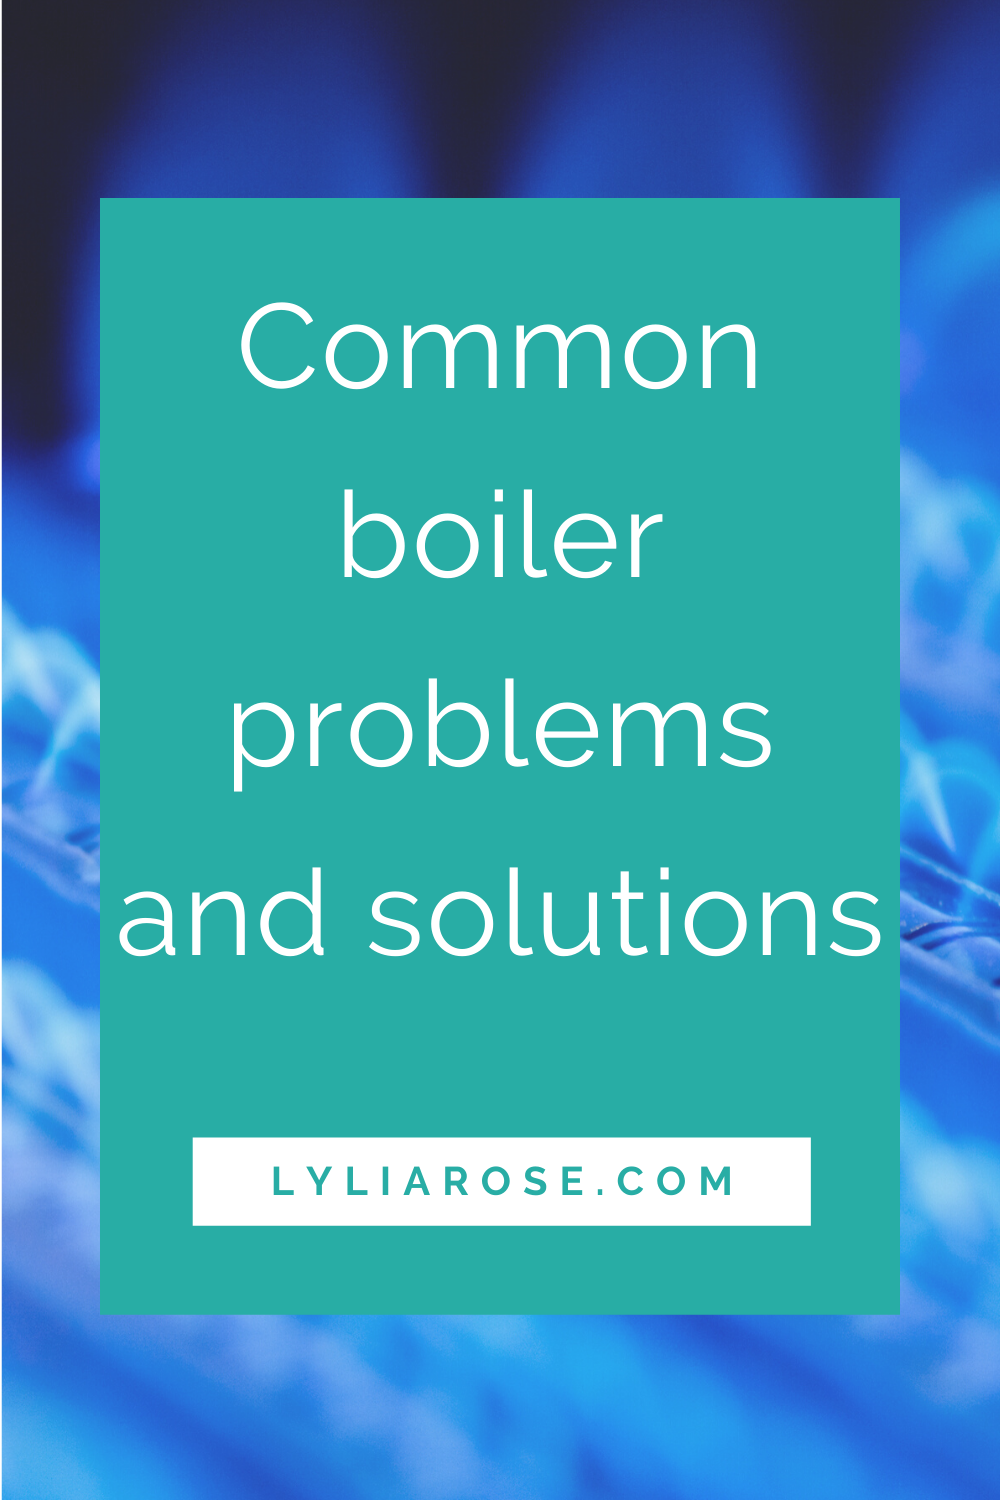 Common boiler problems and solutions (3)